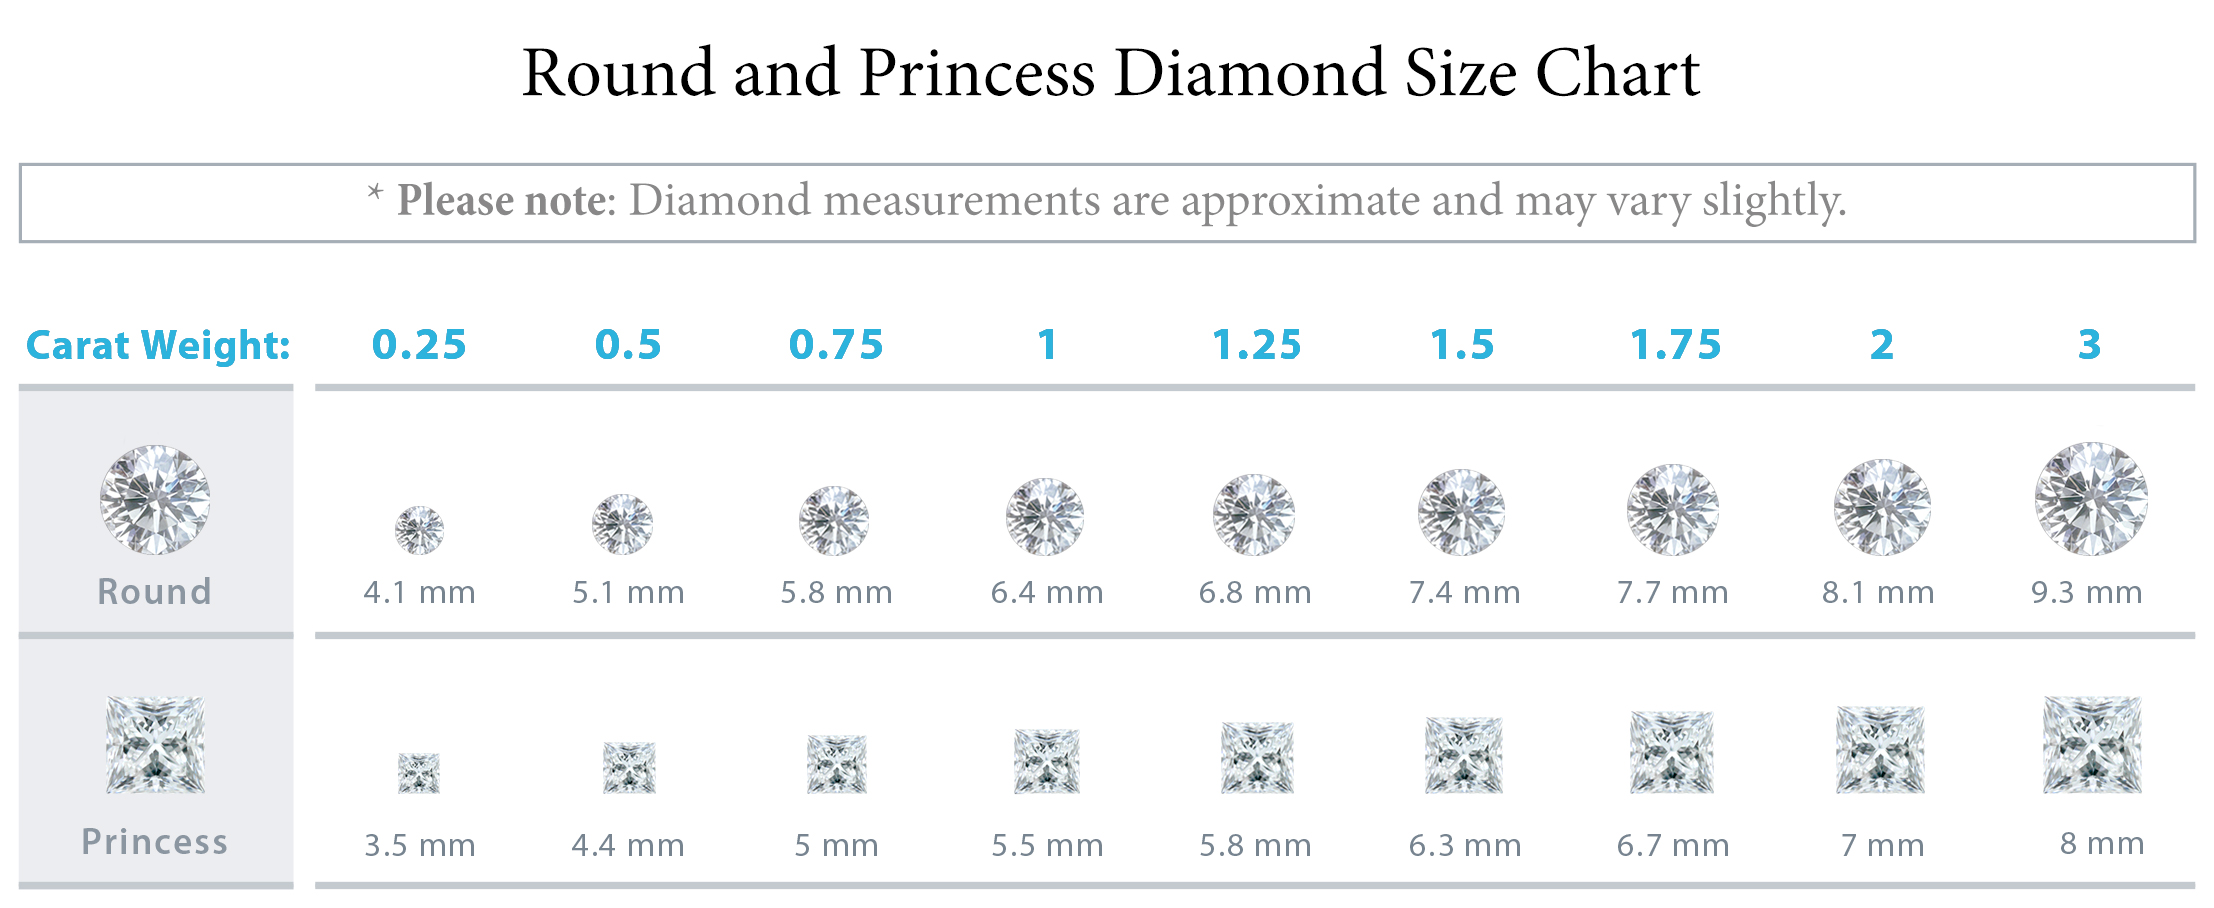 ritani infographic lifecycle res diamond download education high a grading version large of